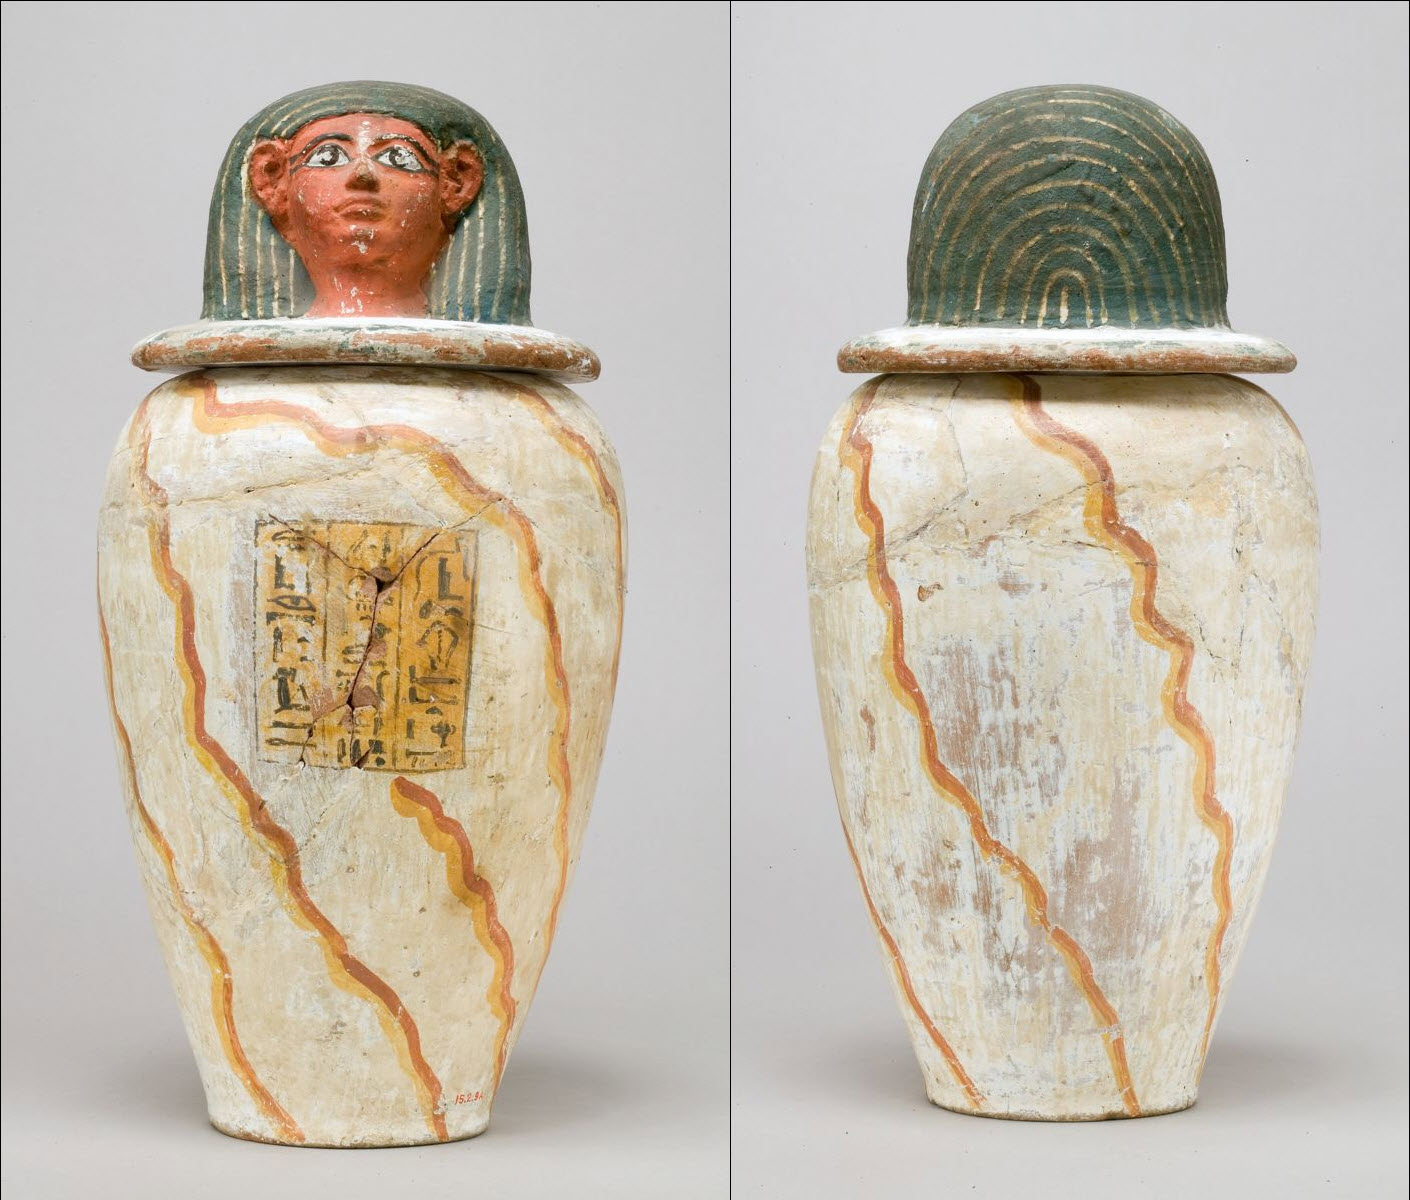 Famous Pharaohs Canopic Jar Of Teti